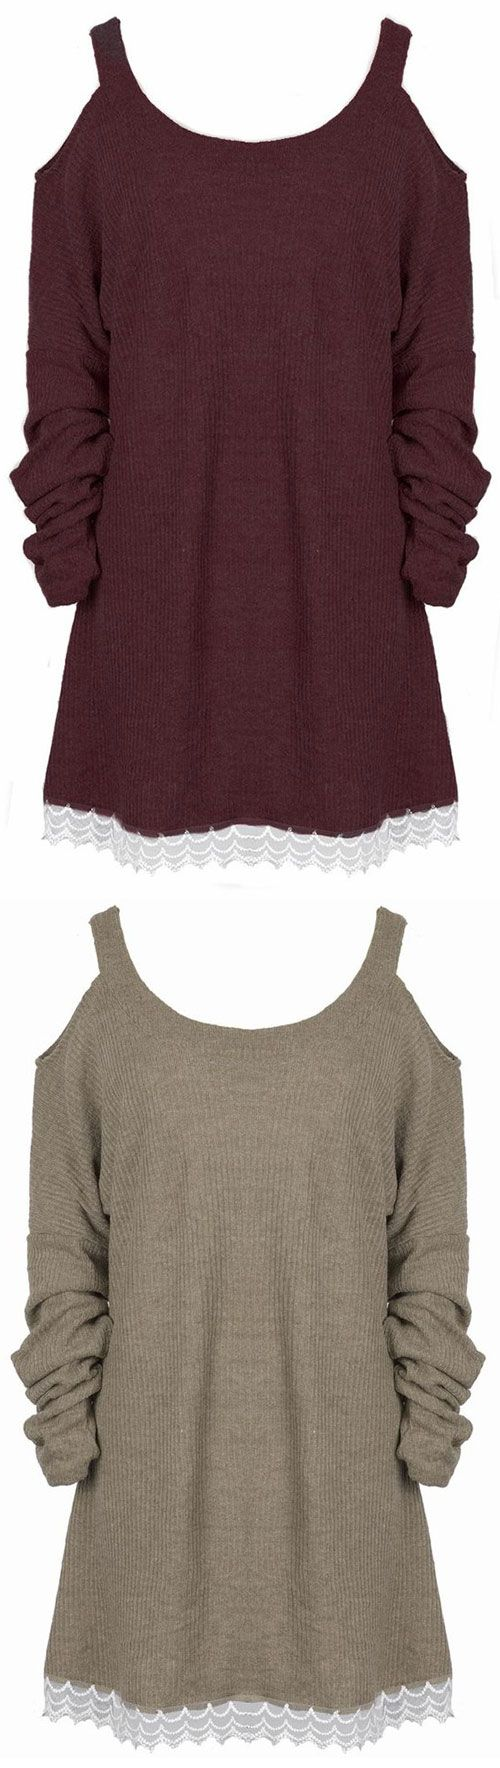 A little sweet to get with $23.99 Only! Free shipping&easy return! This off the shoulder top is detailed with lace hem&A-line design. Show off with Cupshe.com